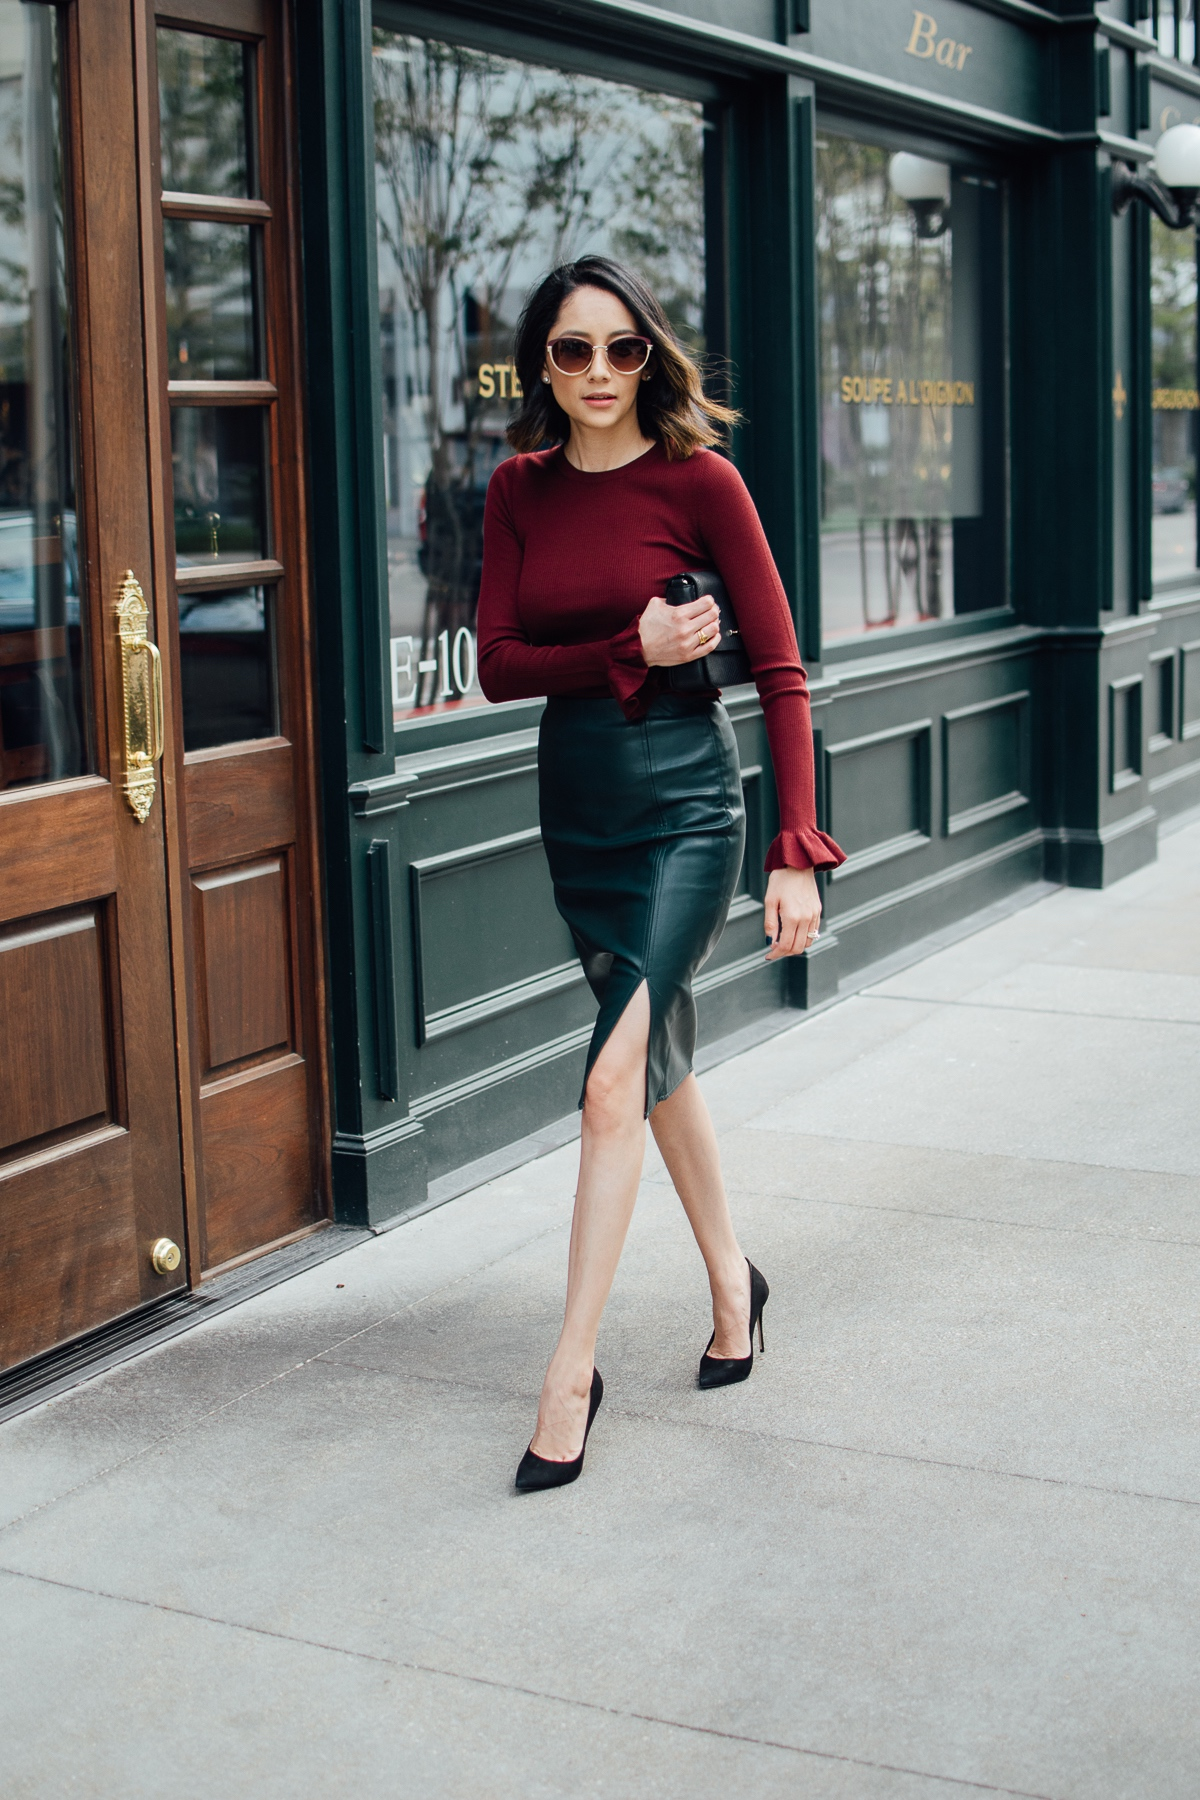 Lilly Beltran of Daily Craving in a holiday ready outfit with a green leather skirt and Burgundy sweater